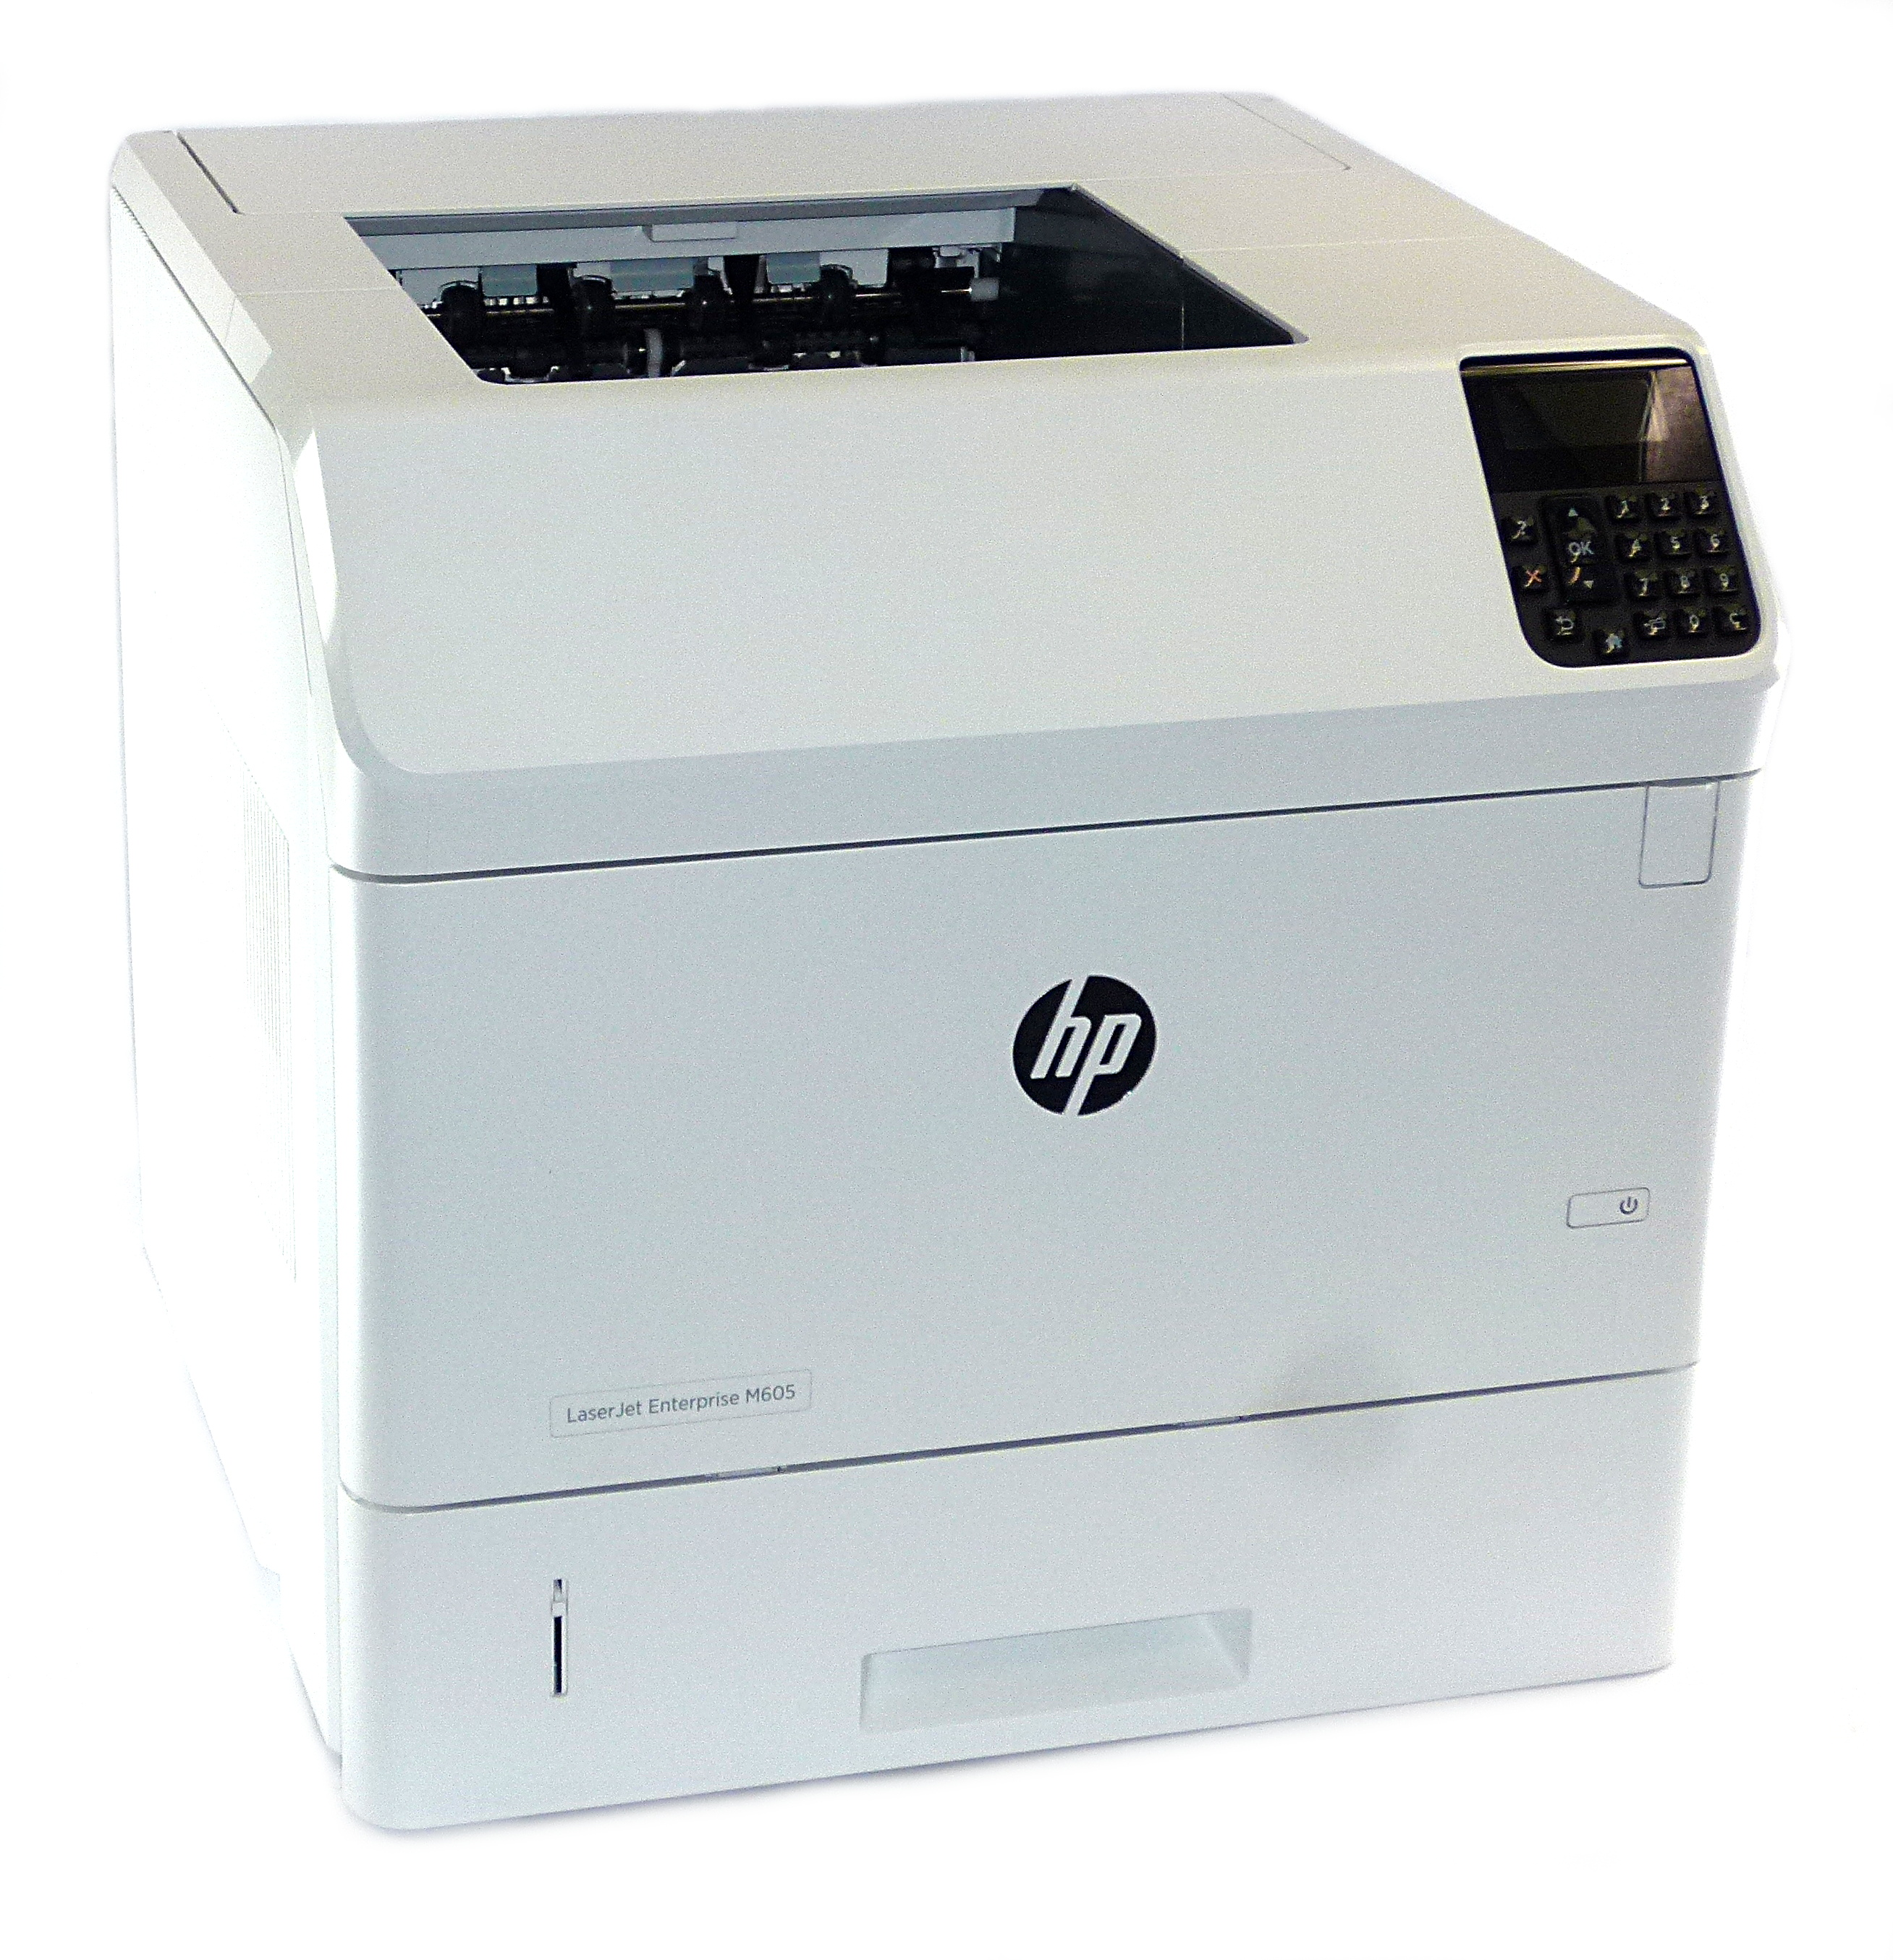 HP E6B69A LaserJet Enterprise M605 M605n Network Laser Printer (Ref.6W03L)